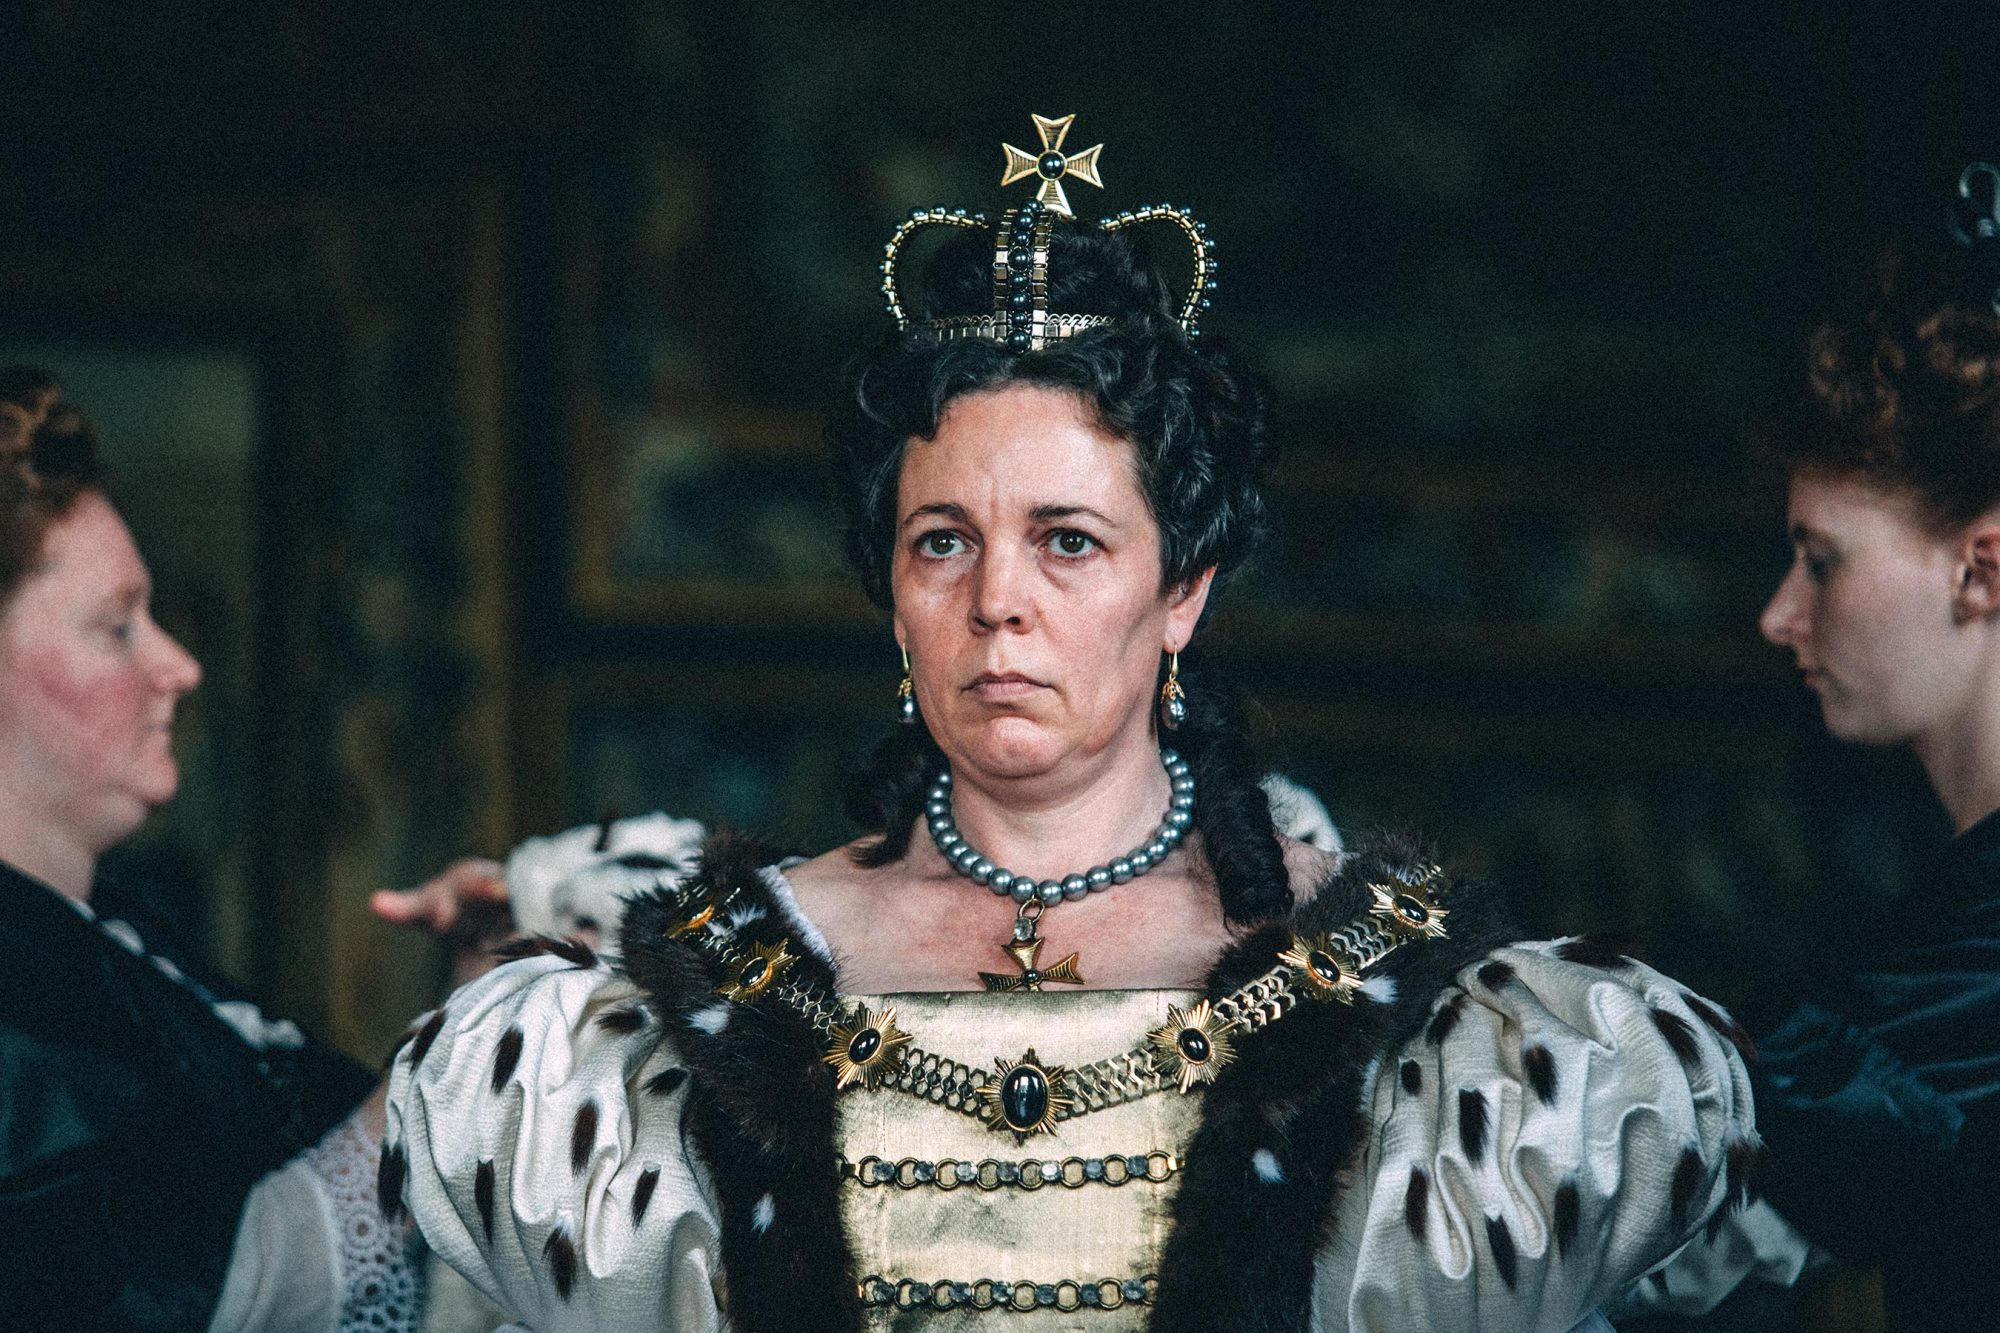 THE FAVOURITEOlivia Colman